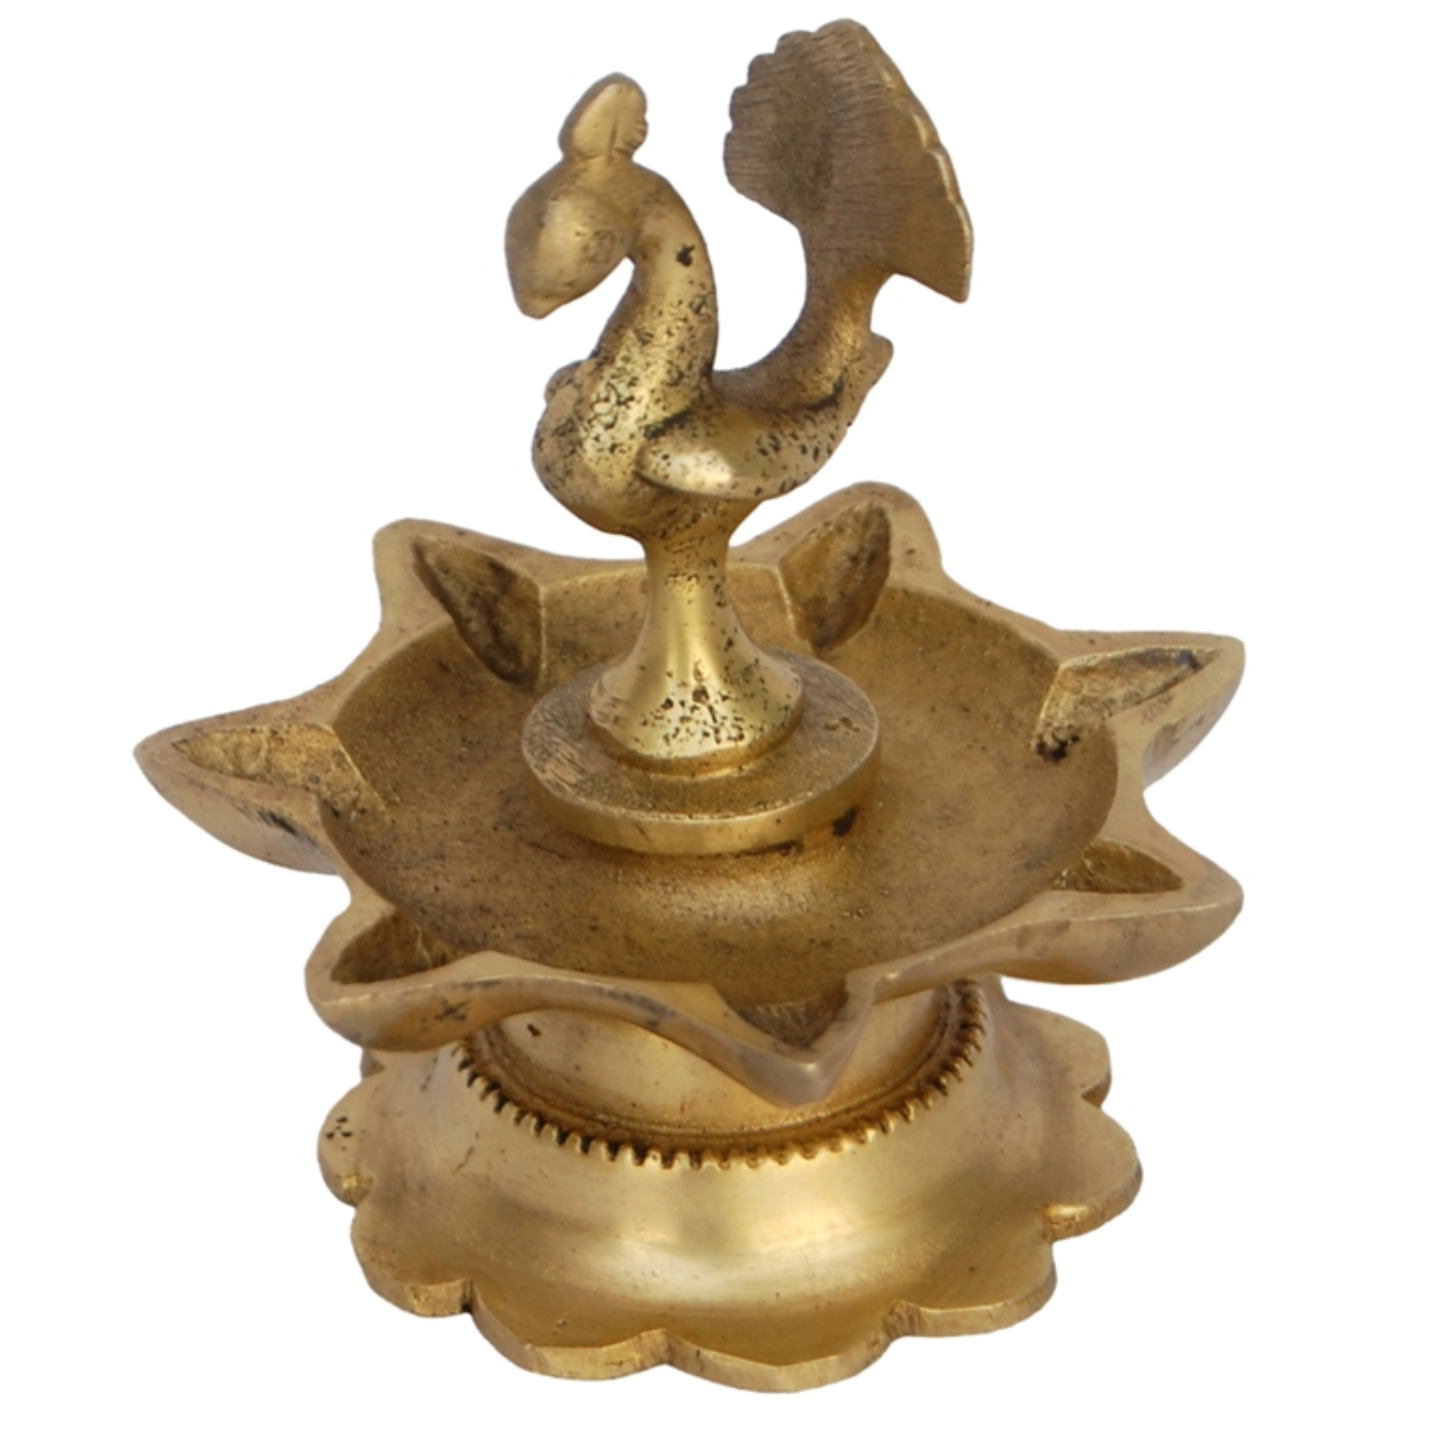 Decorative Diya Or Deepam With Peacock Figure - 3.5 Inch (BS1173 A)